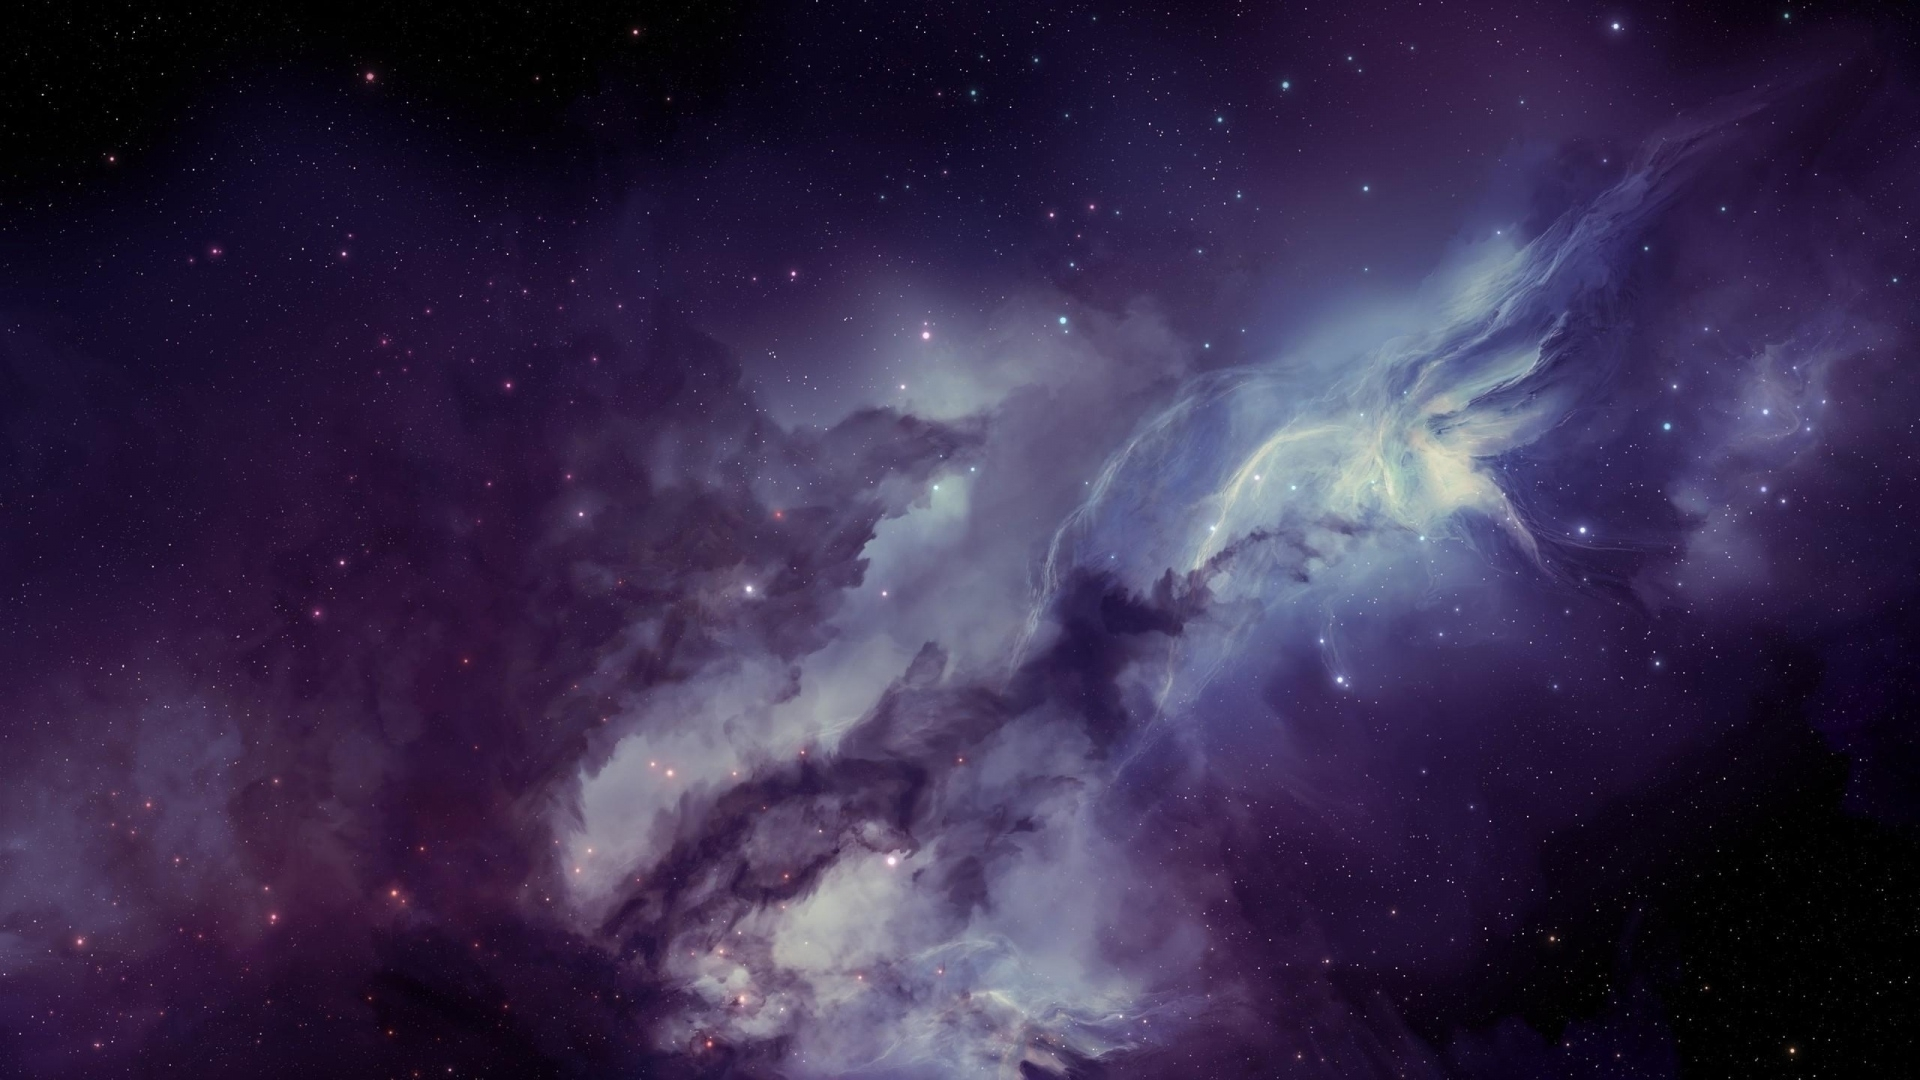 download wallpaper 1920x1080 galaxy, nebula, blurring, stars full